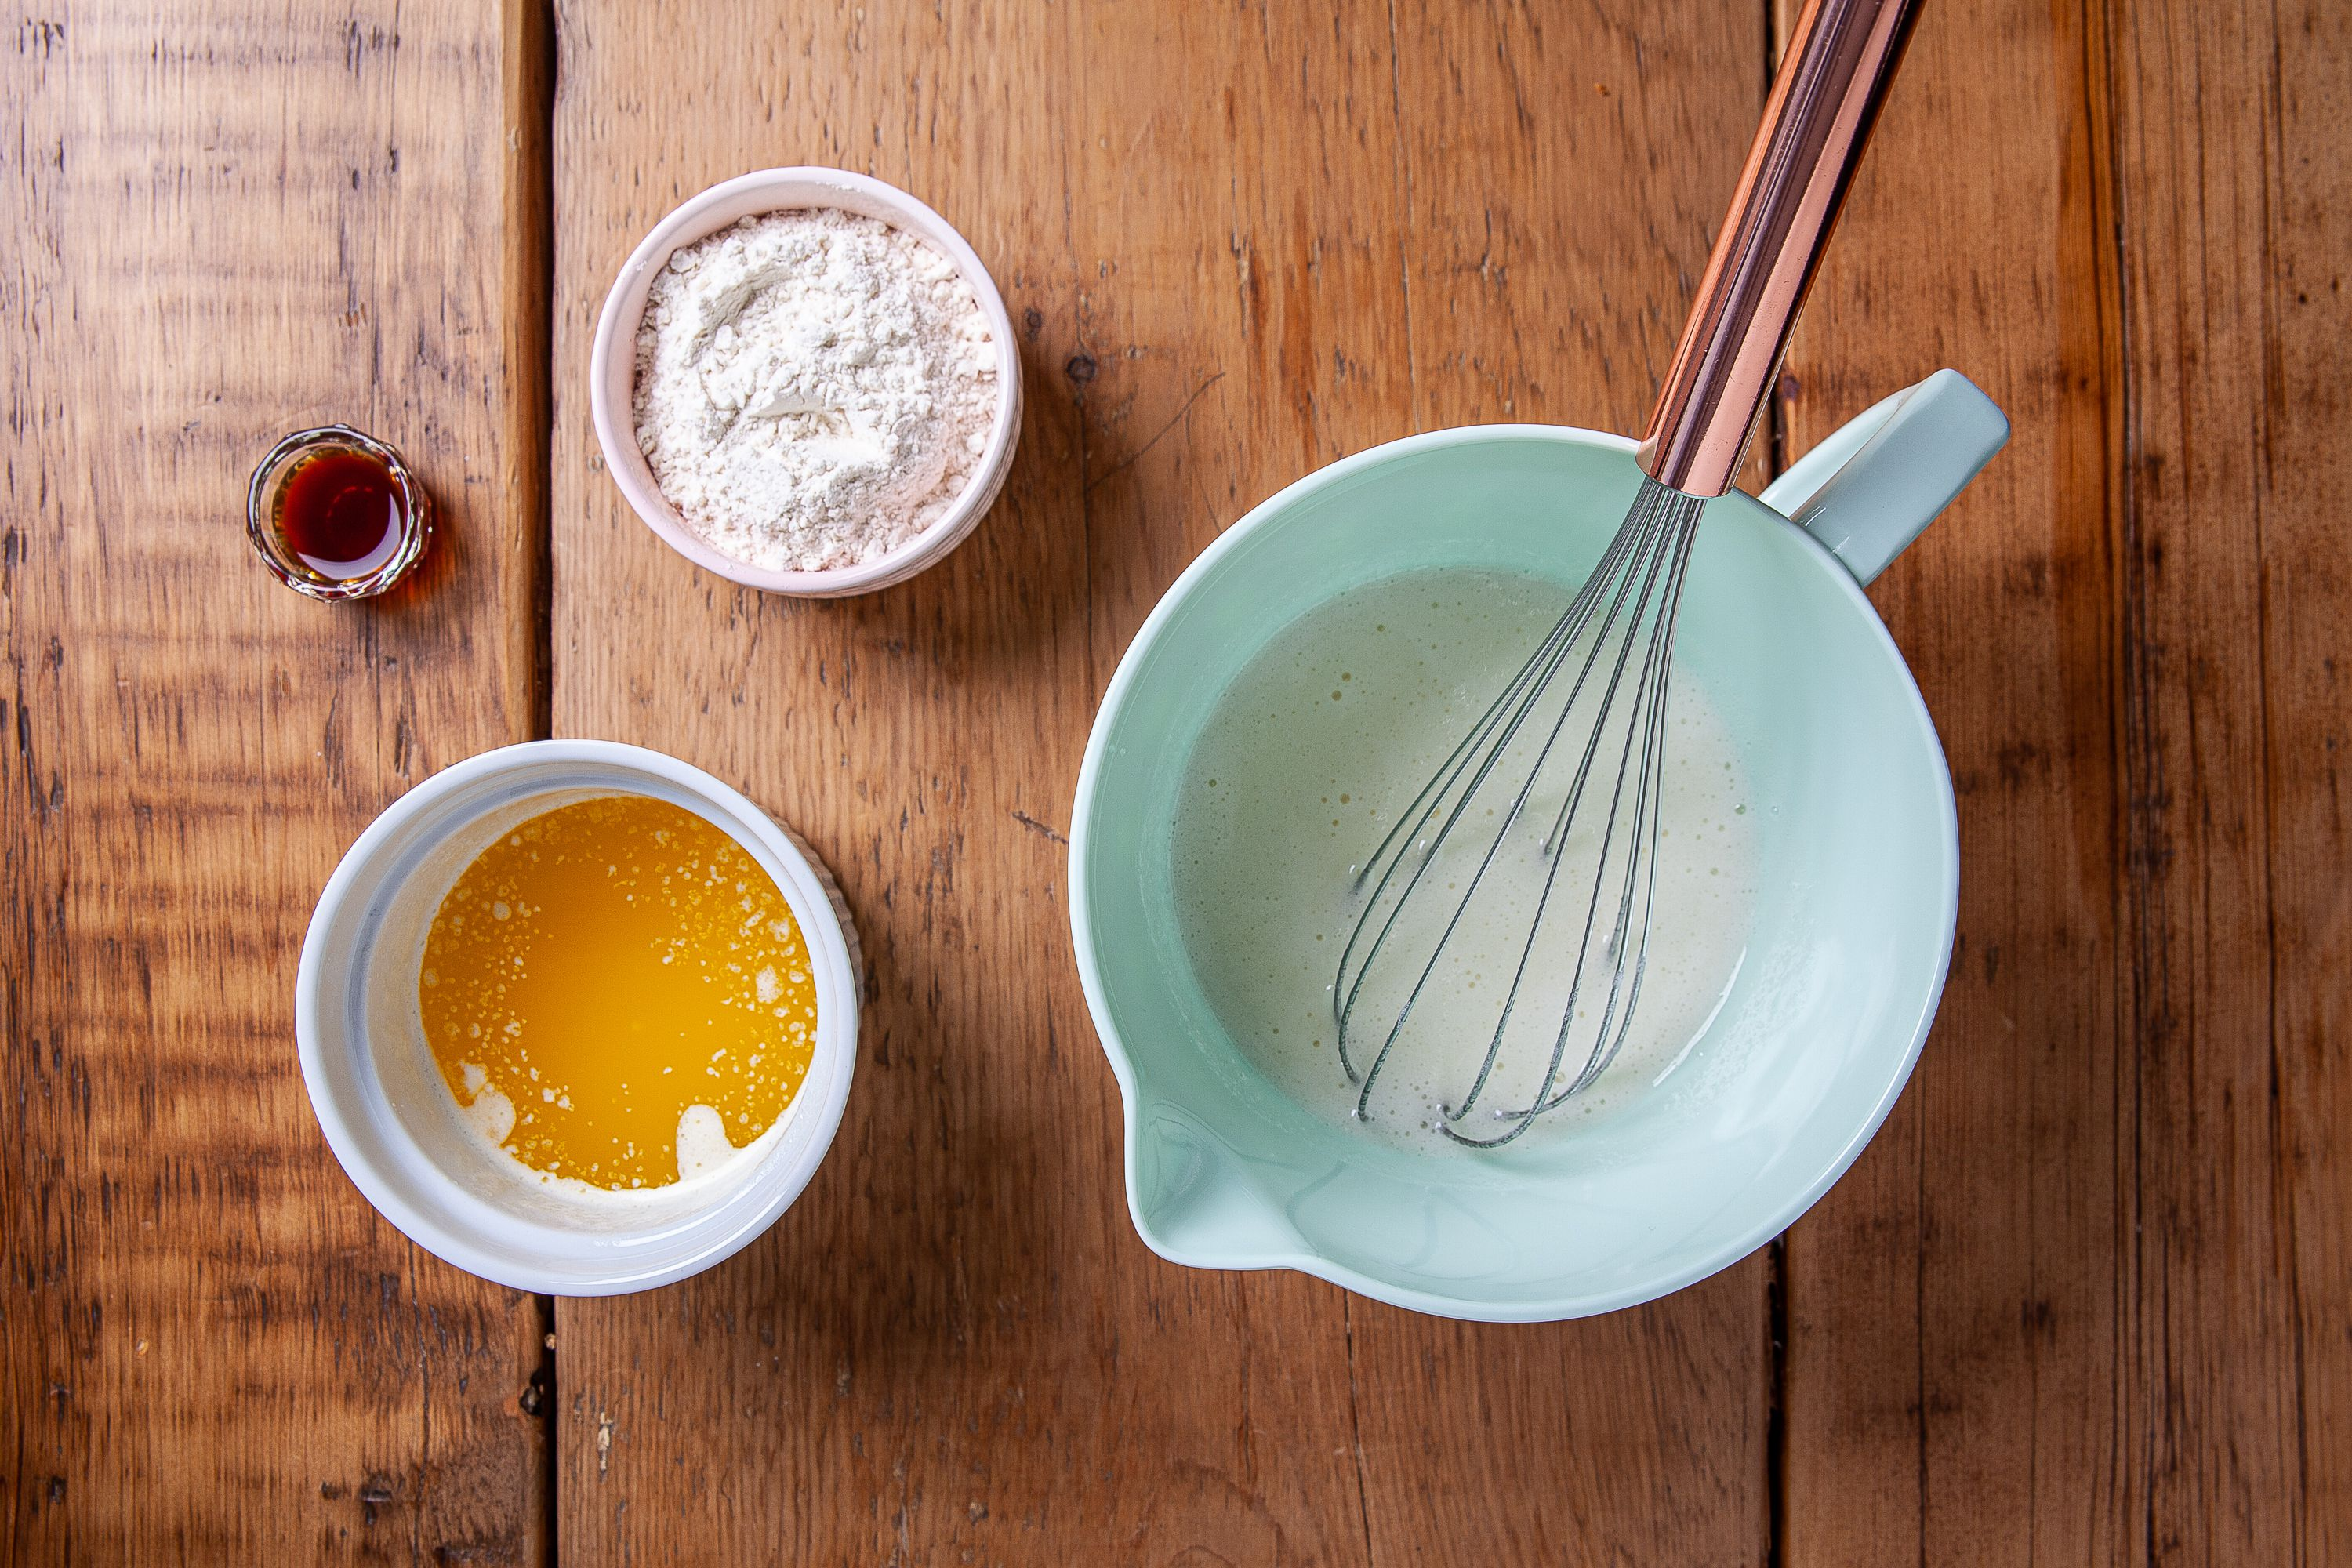 Add egg flower and vanilla into the whisked ingredients